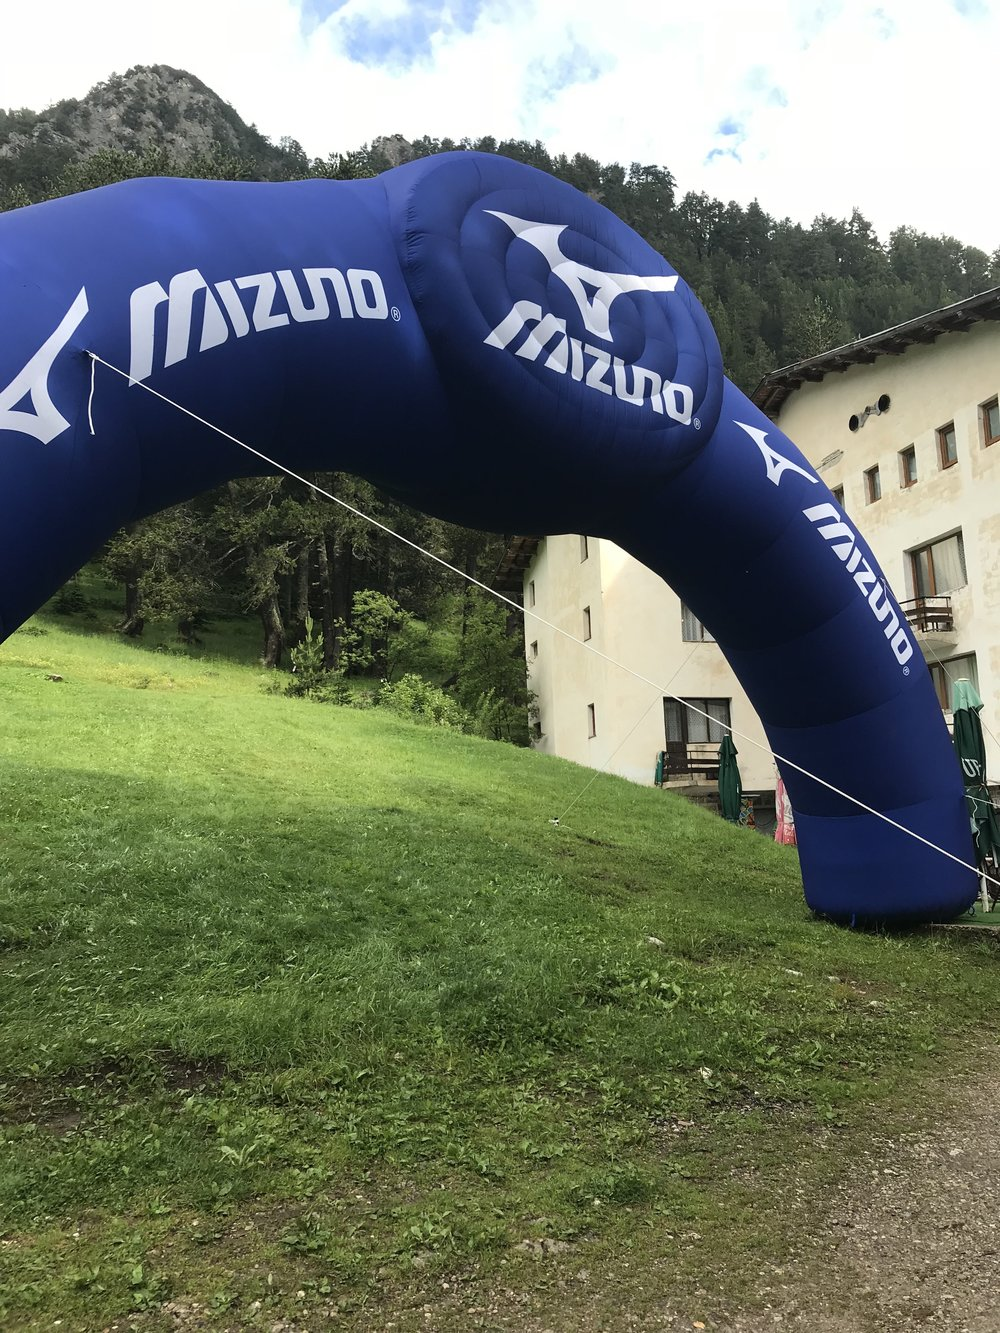 The start line at Banderitsa Chalet